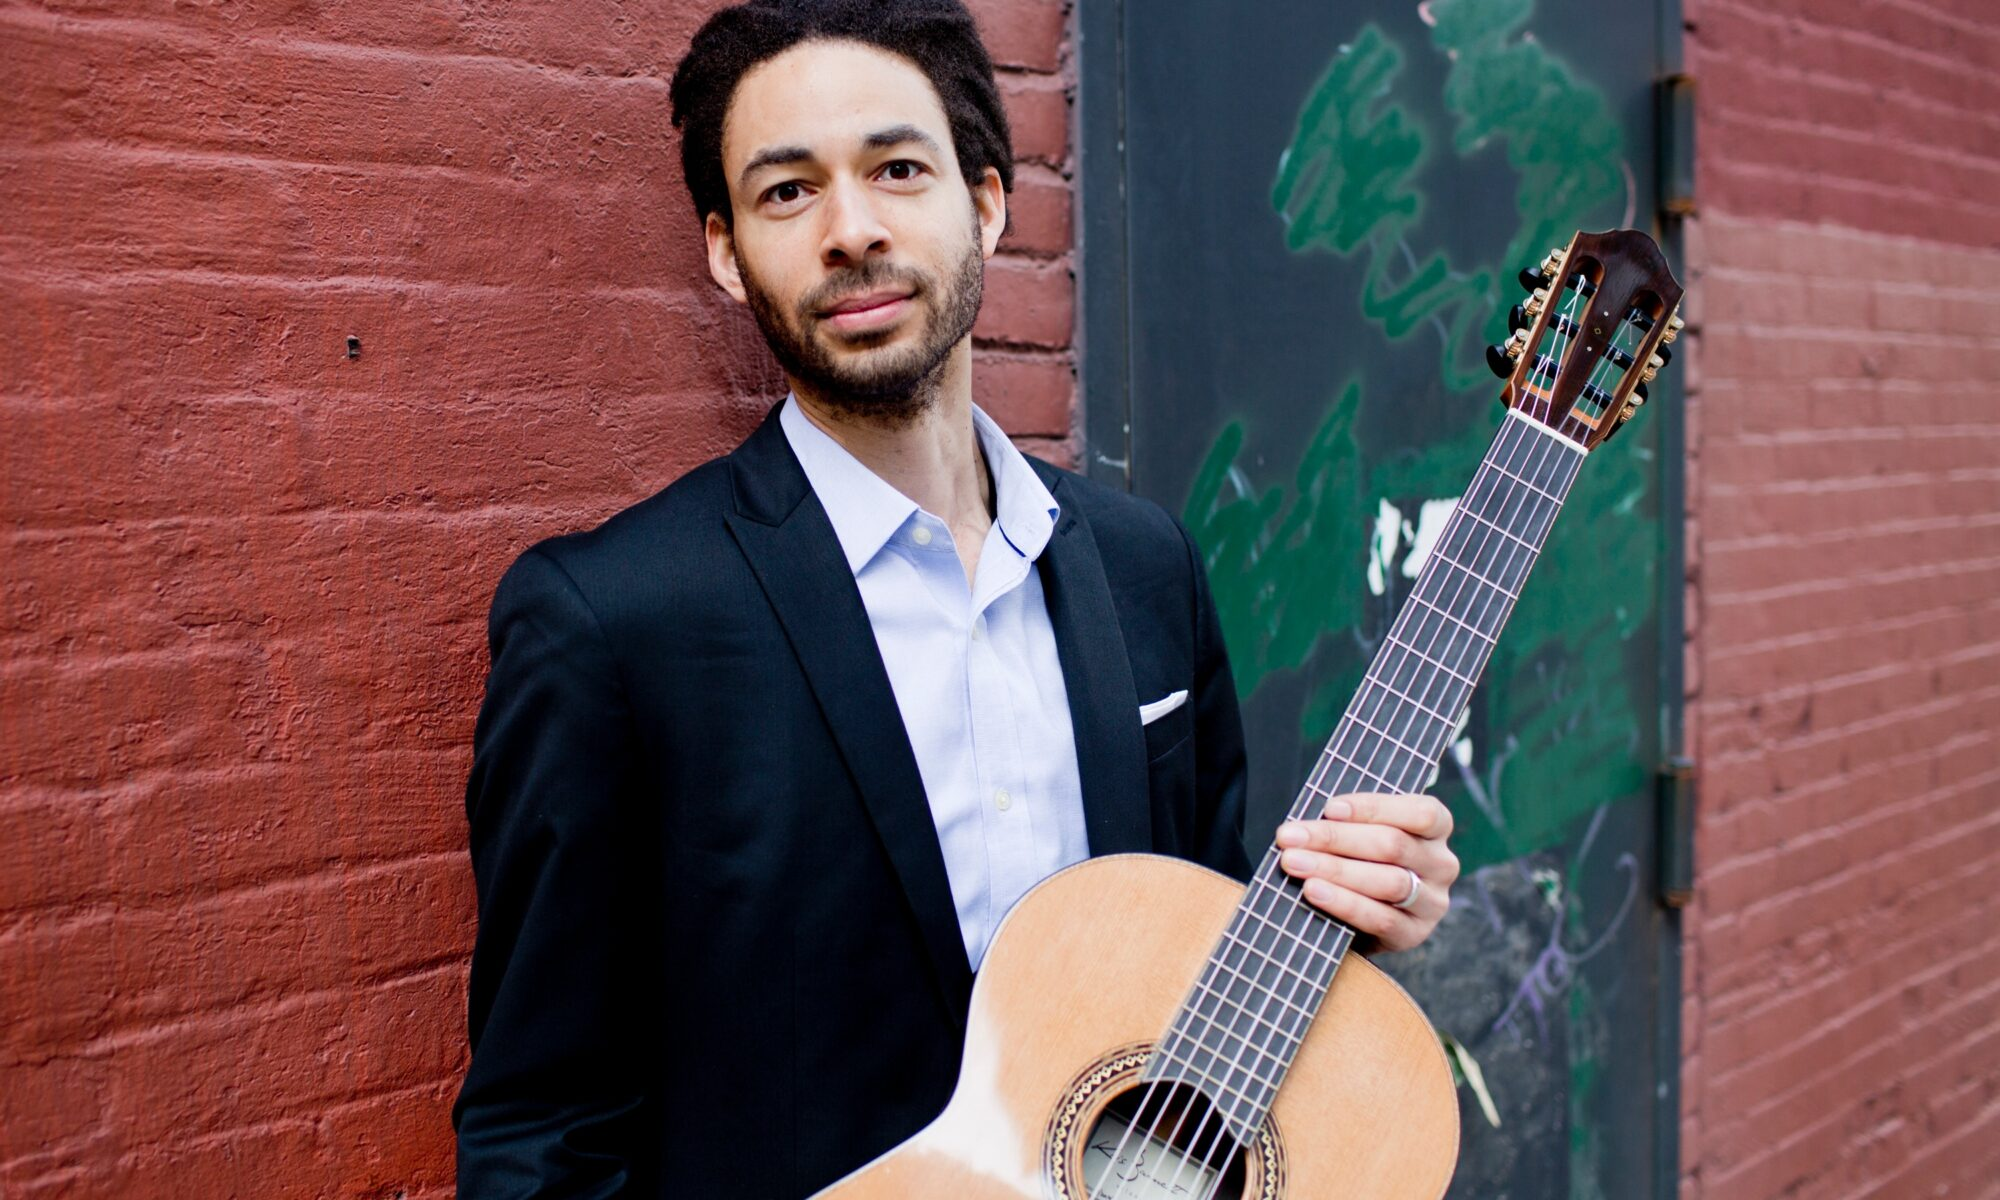 Classical guitarist Thomas Flippin stands in front of a brick wall while holding a guitar.